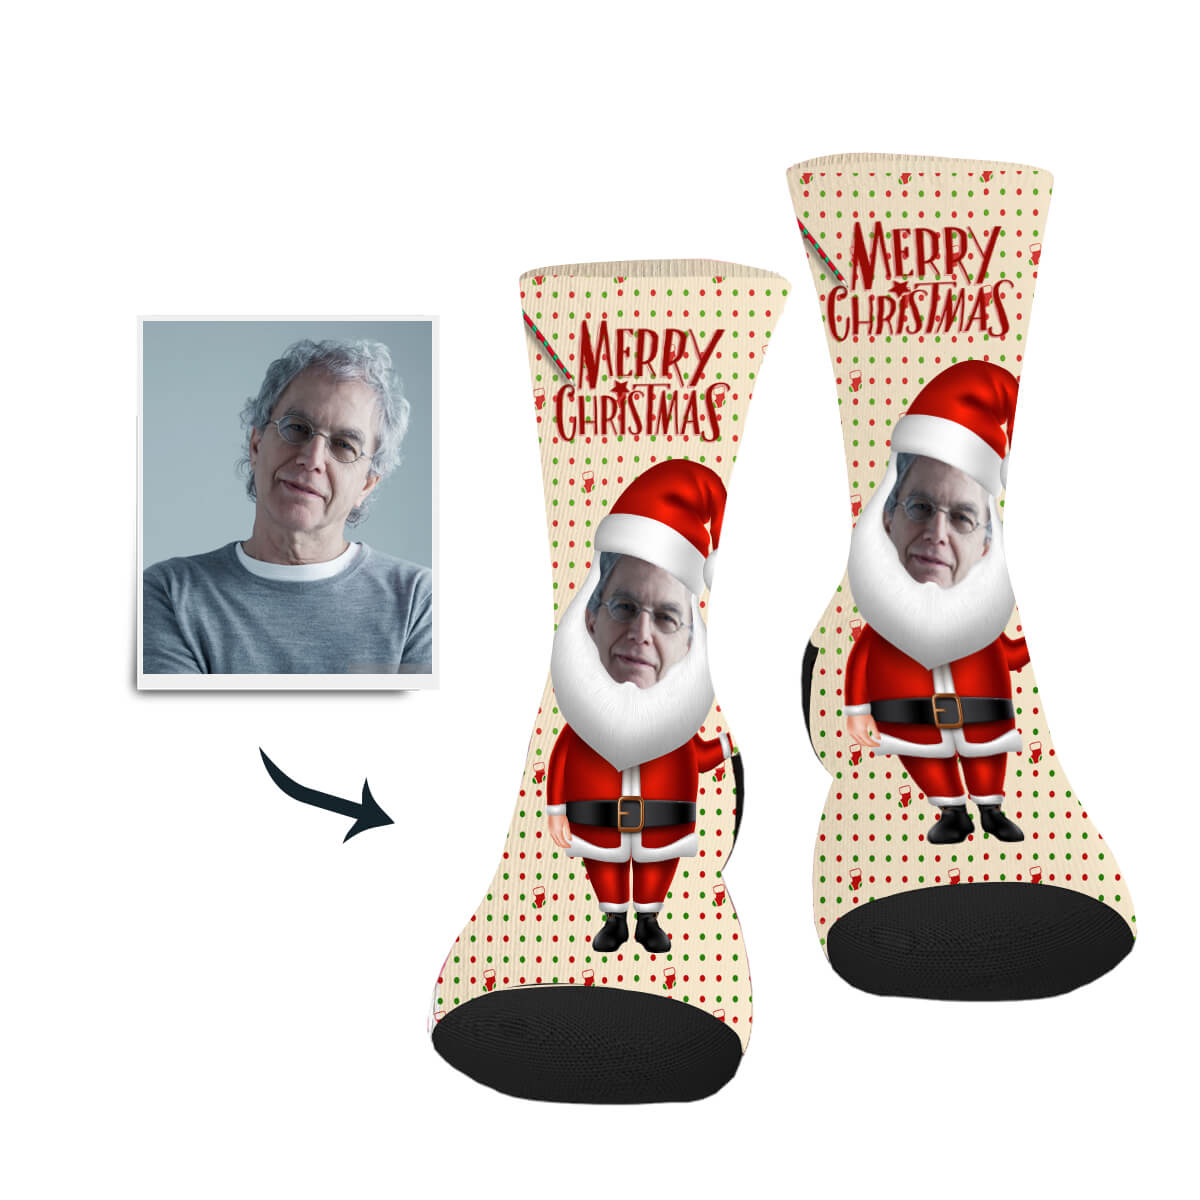 Santa's Big Beard Custom Socks - Make Face Socks